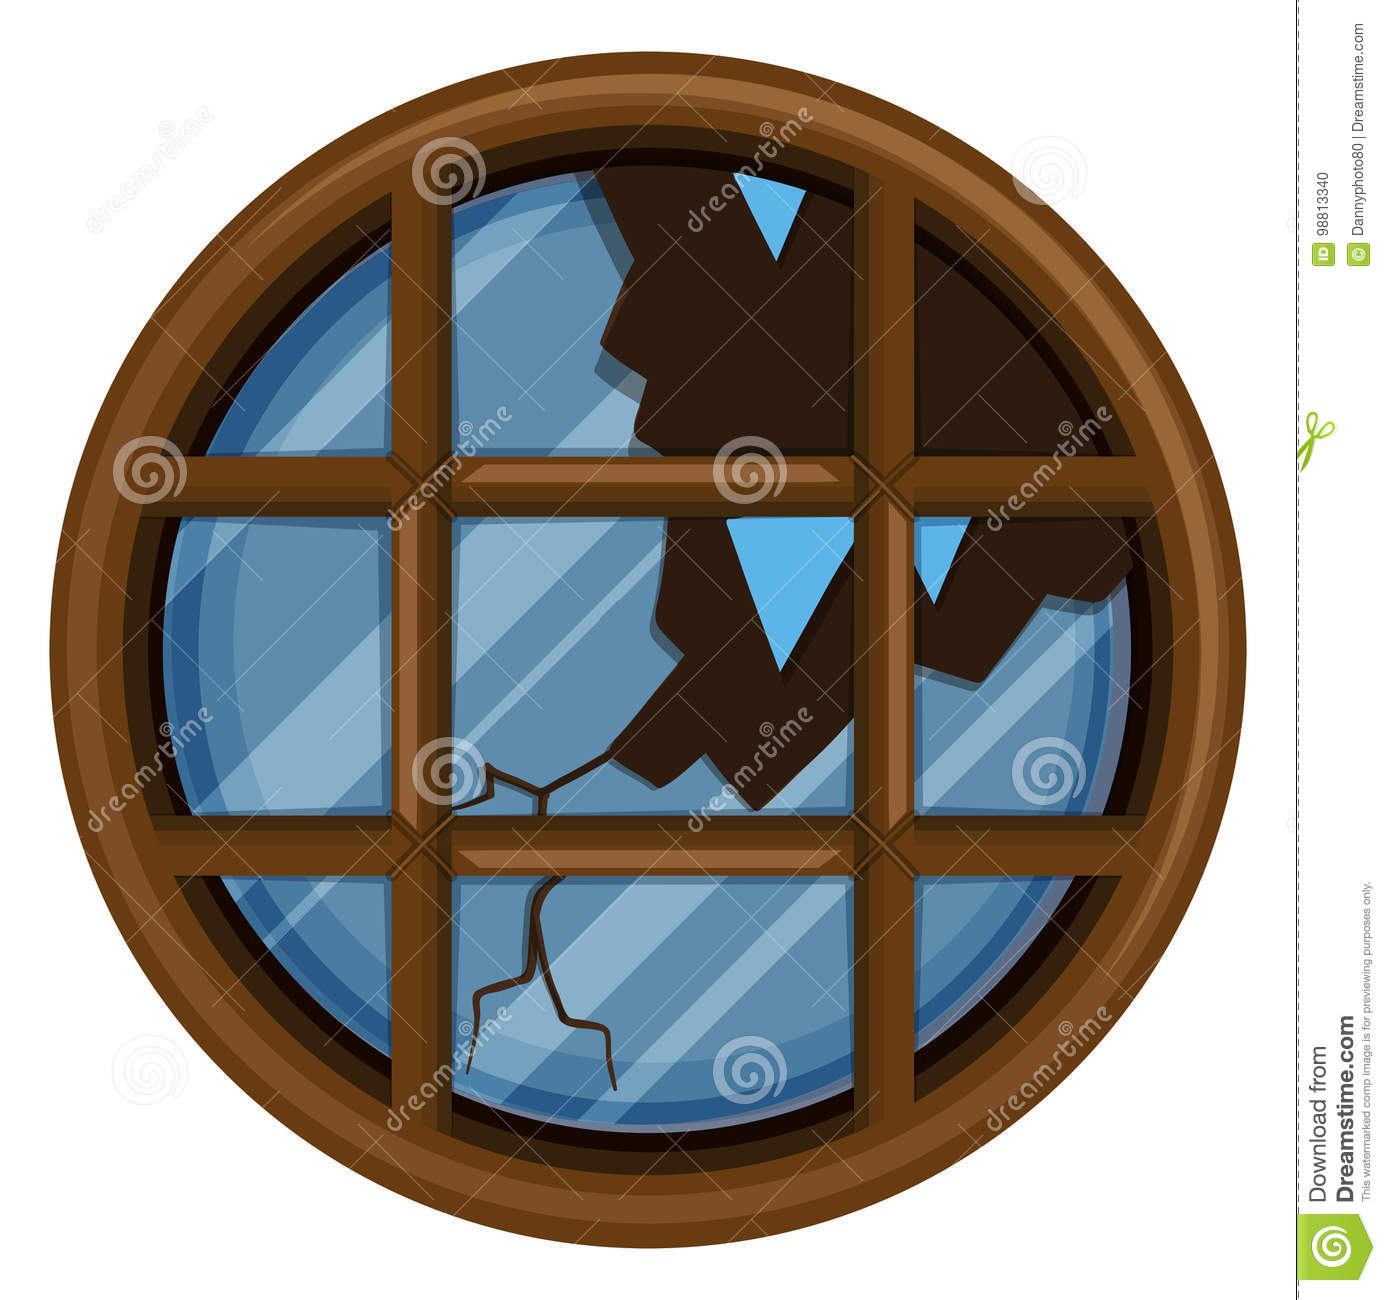 hight resolution of round window with broken glass